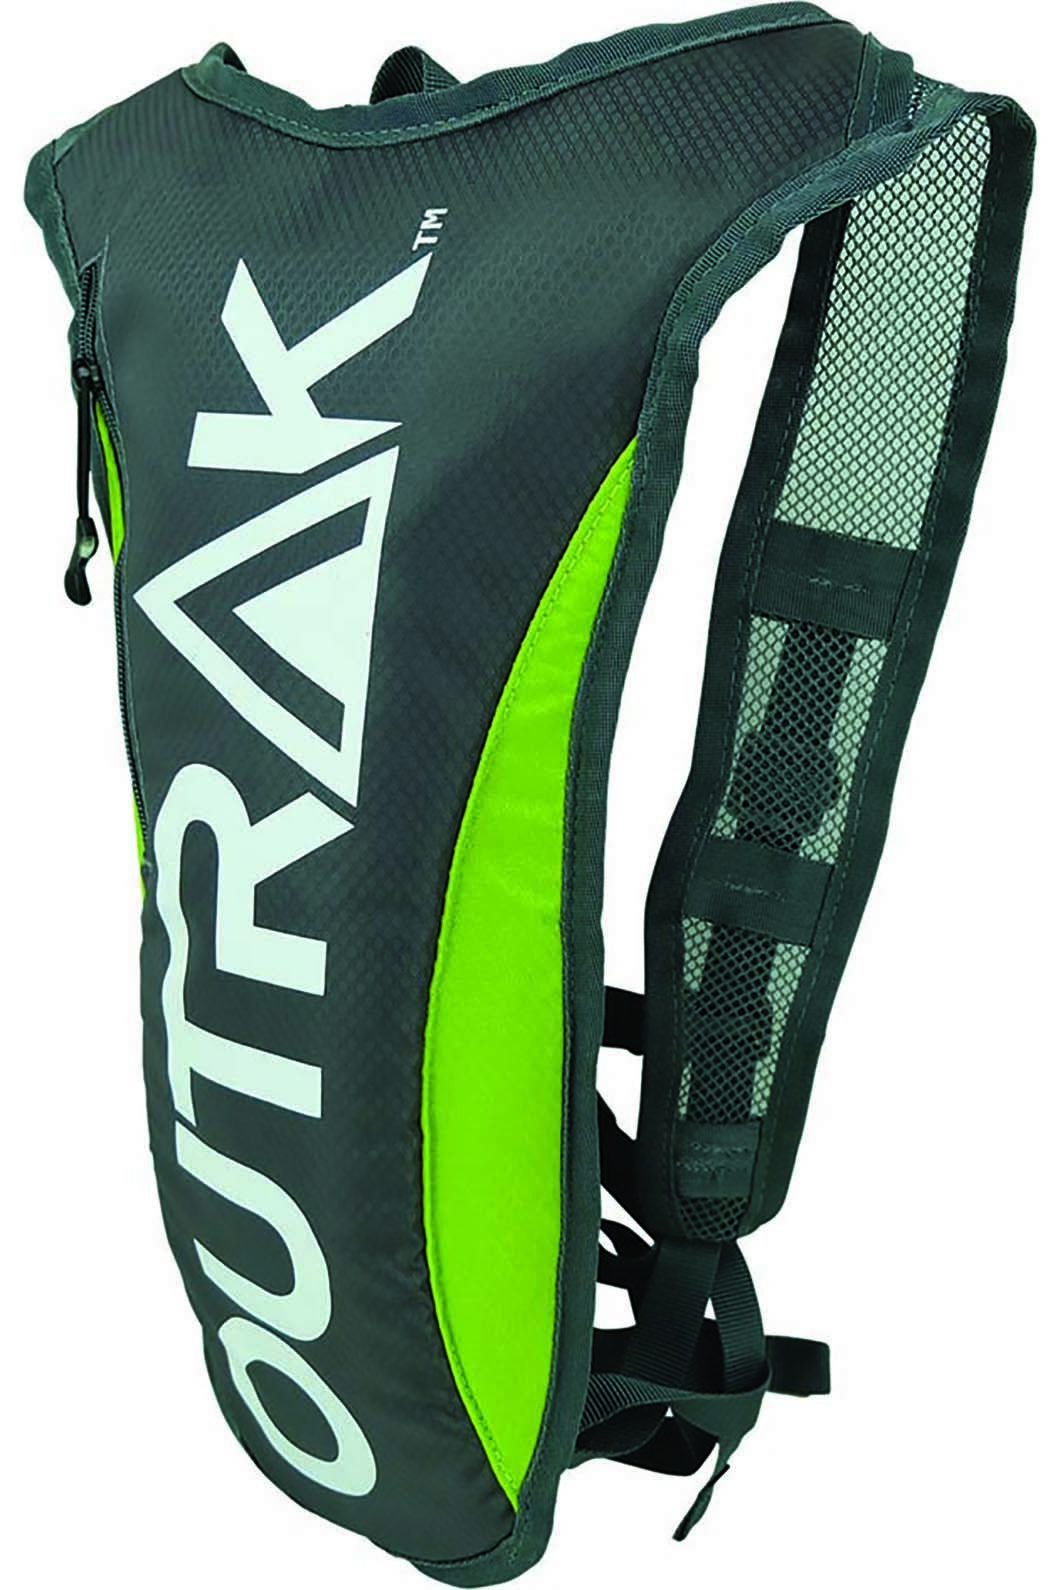 Outrak Missile Hydration Pack 2LL, Green, hi-res